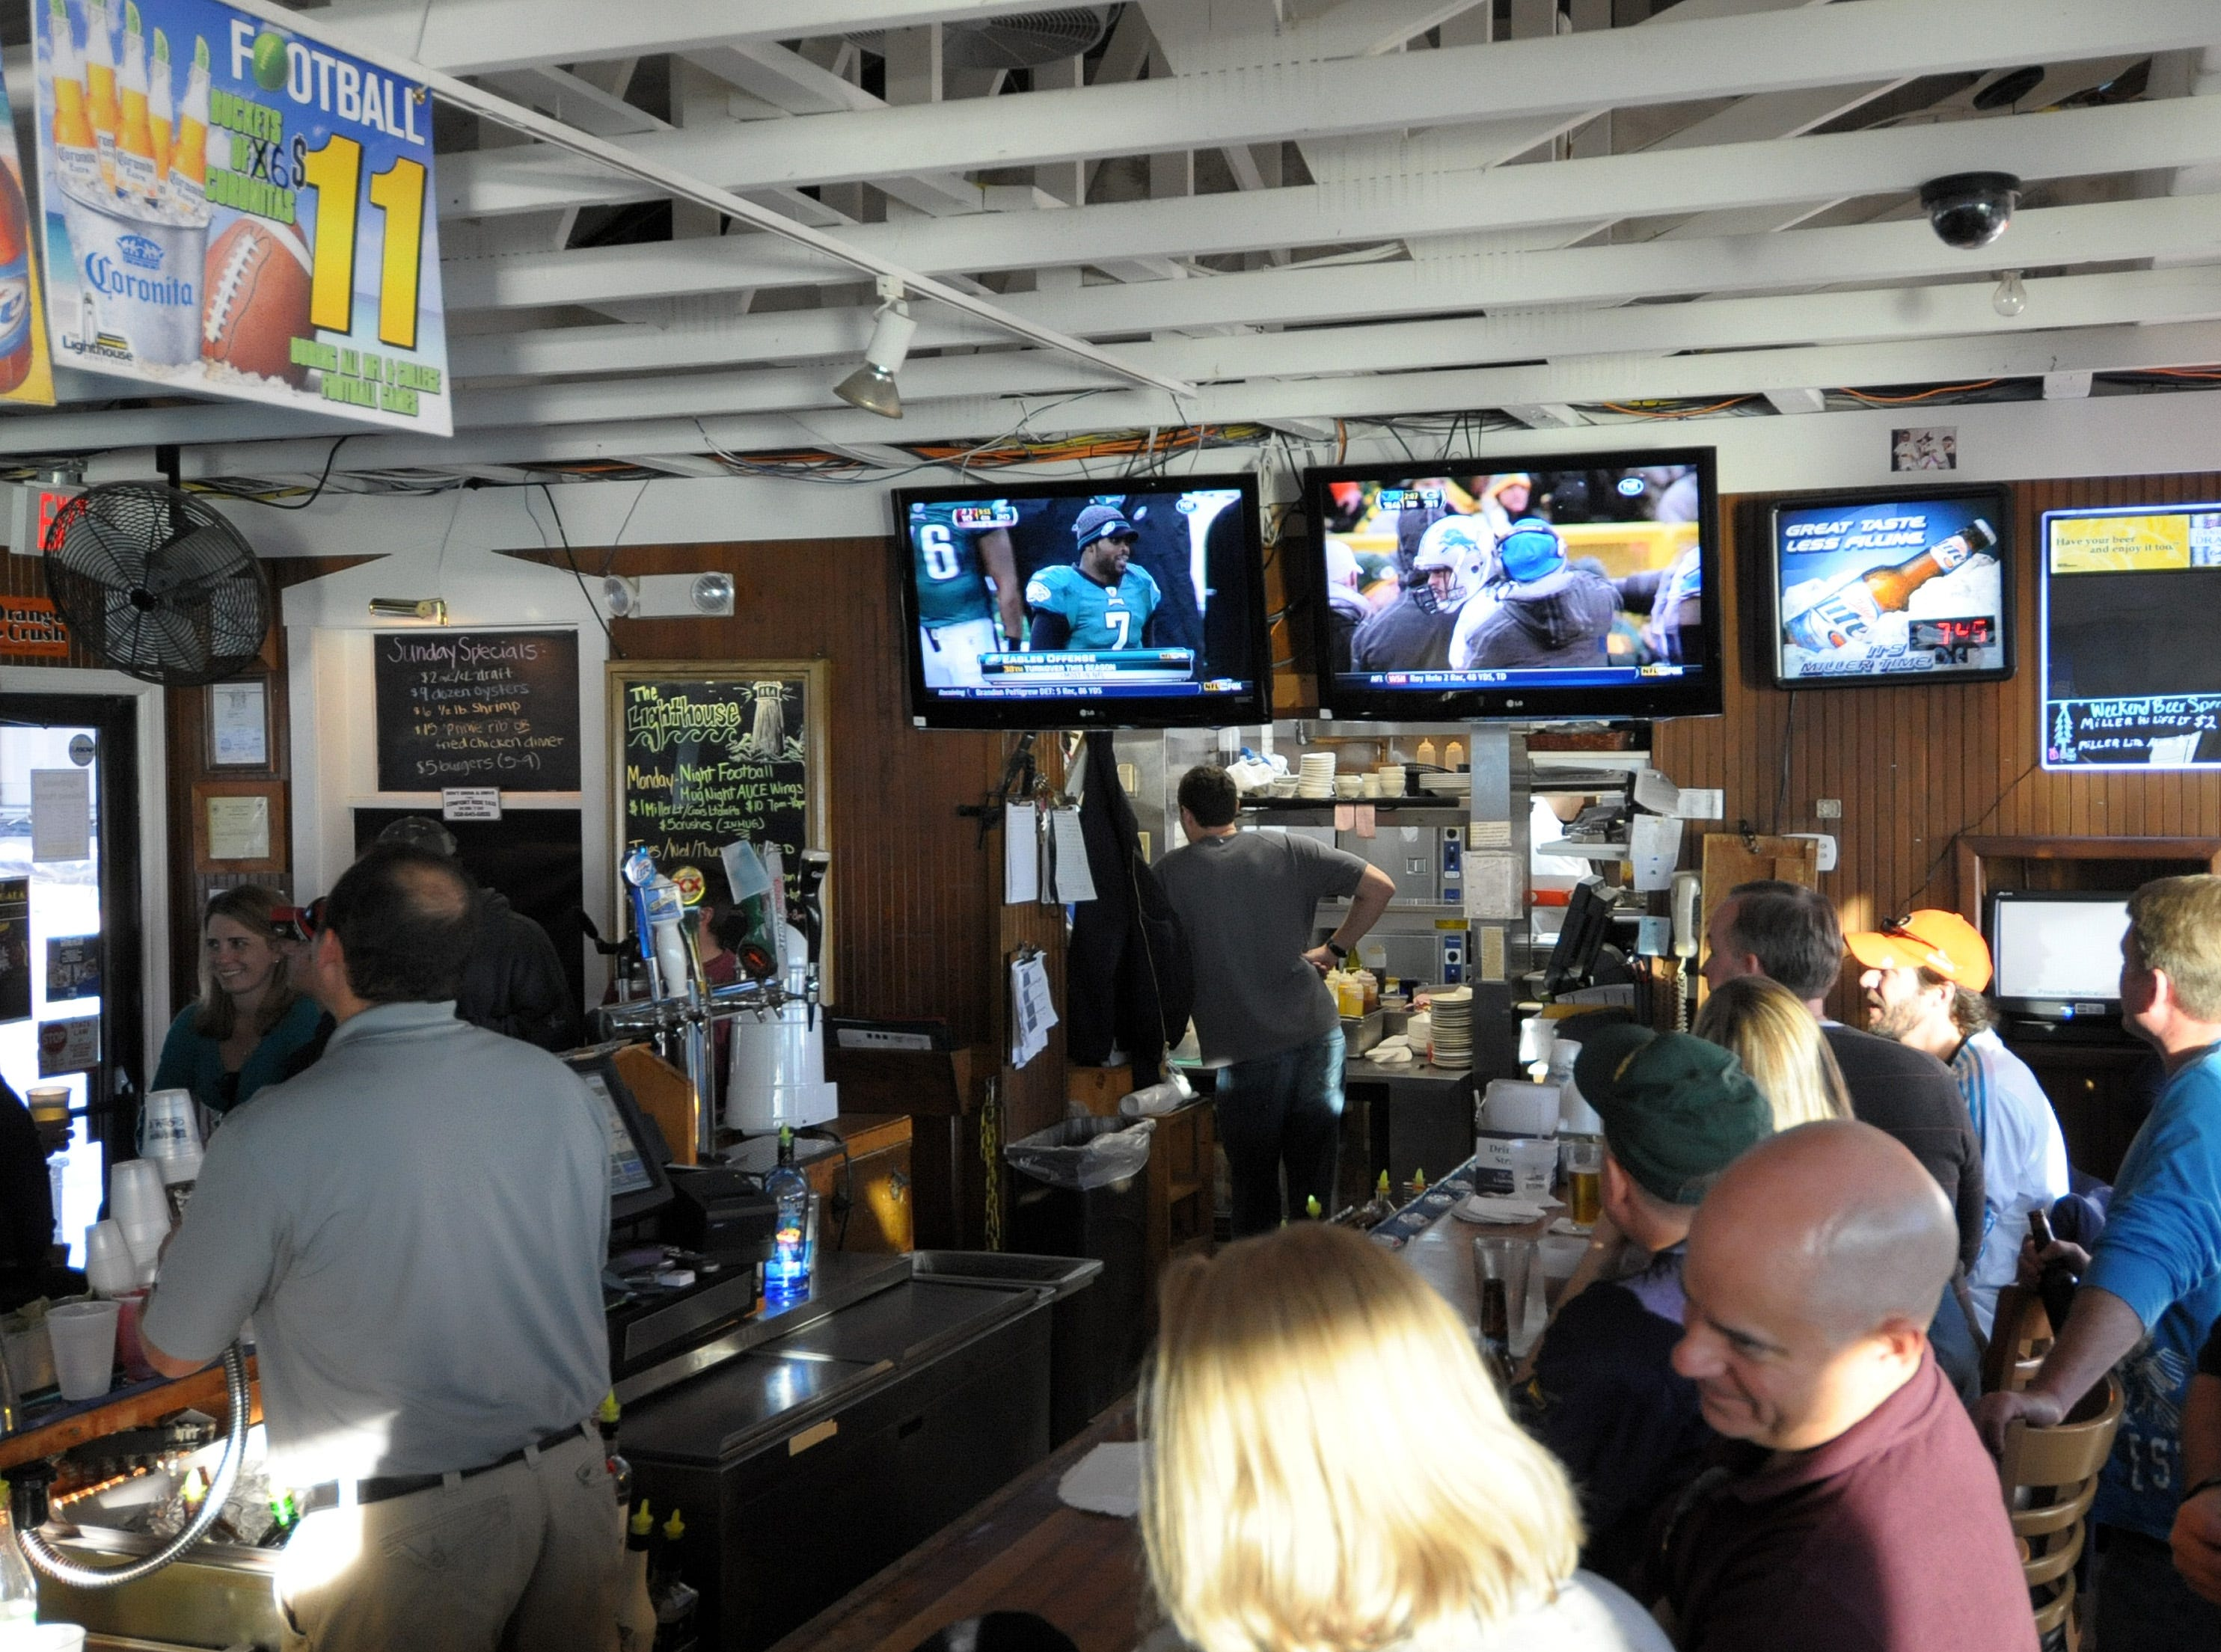 Fans gather at The Lighthouse in Dewey Beach to watch football in 2012.